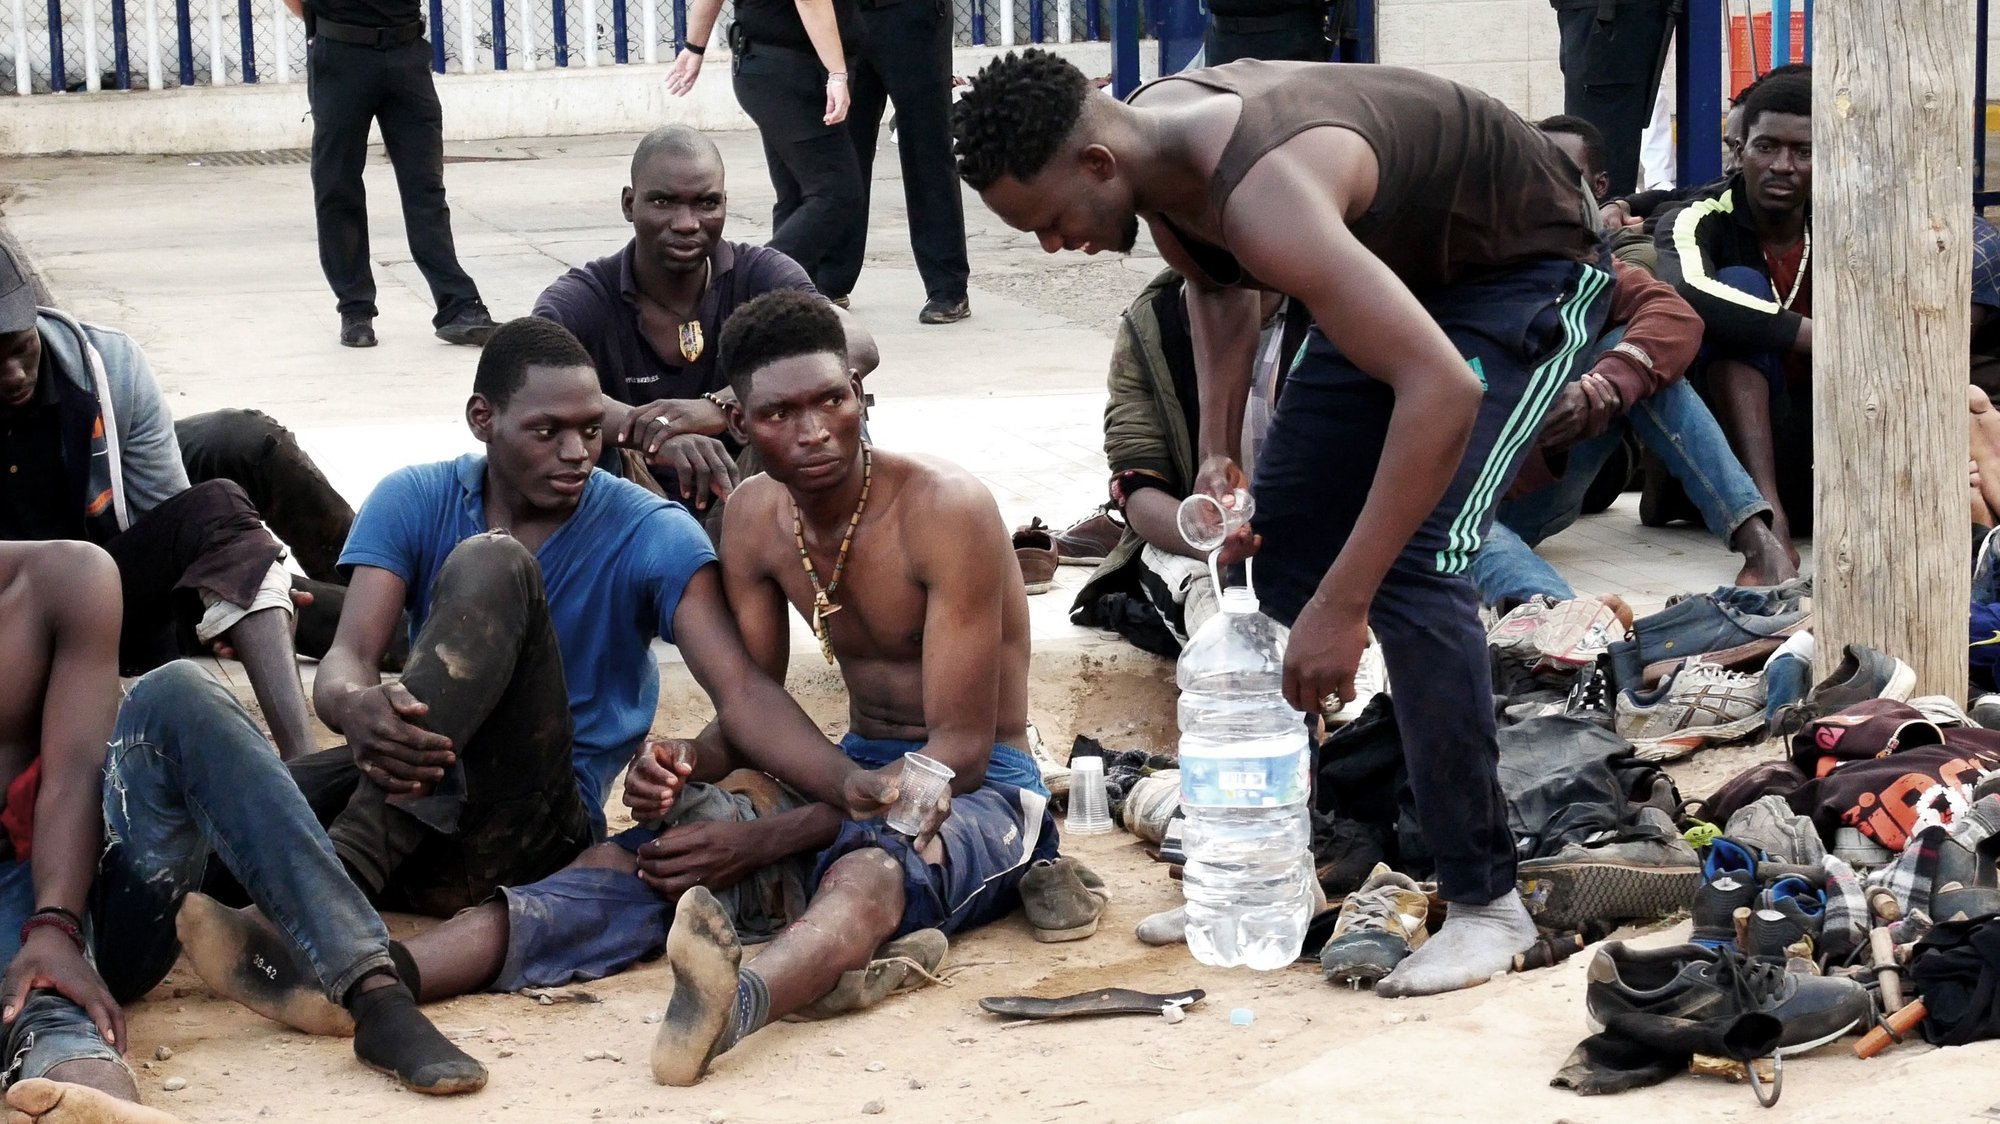 epa09357669 Some migrants rest after they managed to reach Spain by jumping the border fence with Morocco, in Melilla, a Spanish enclave in northern Africa, 22 July 2021. Some 300 migrants managed to reach Spain after they massively jumped the border fence in the early morning.  EPA/PAQUI SANCHEZ